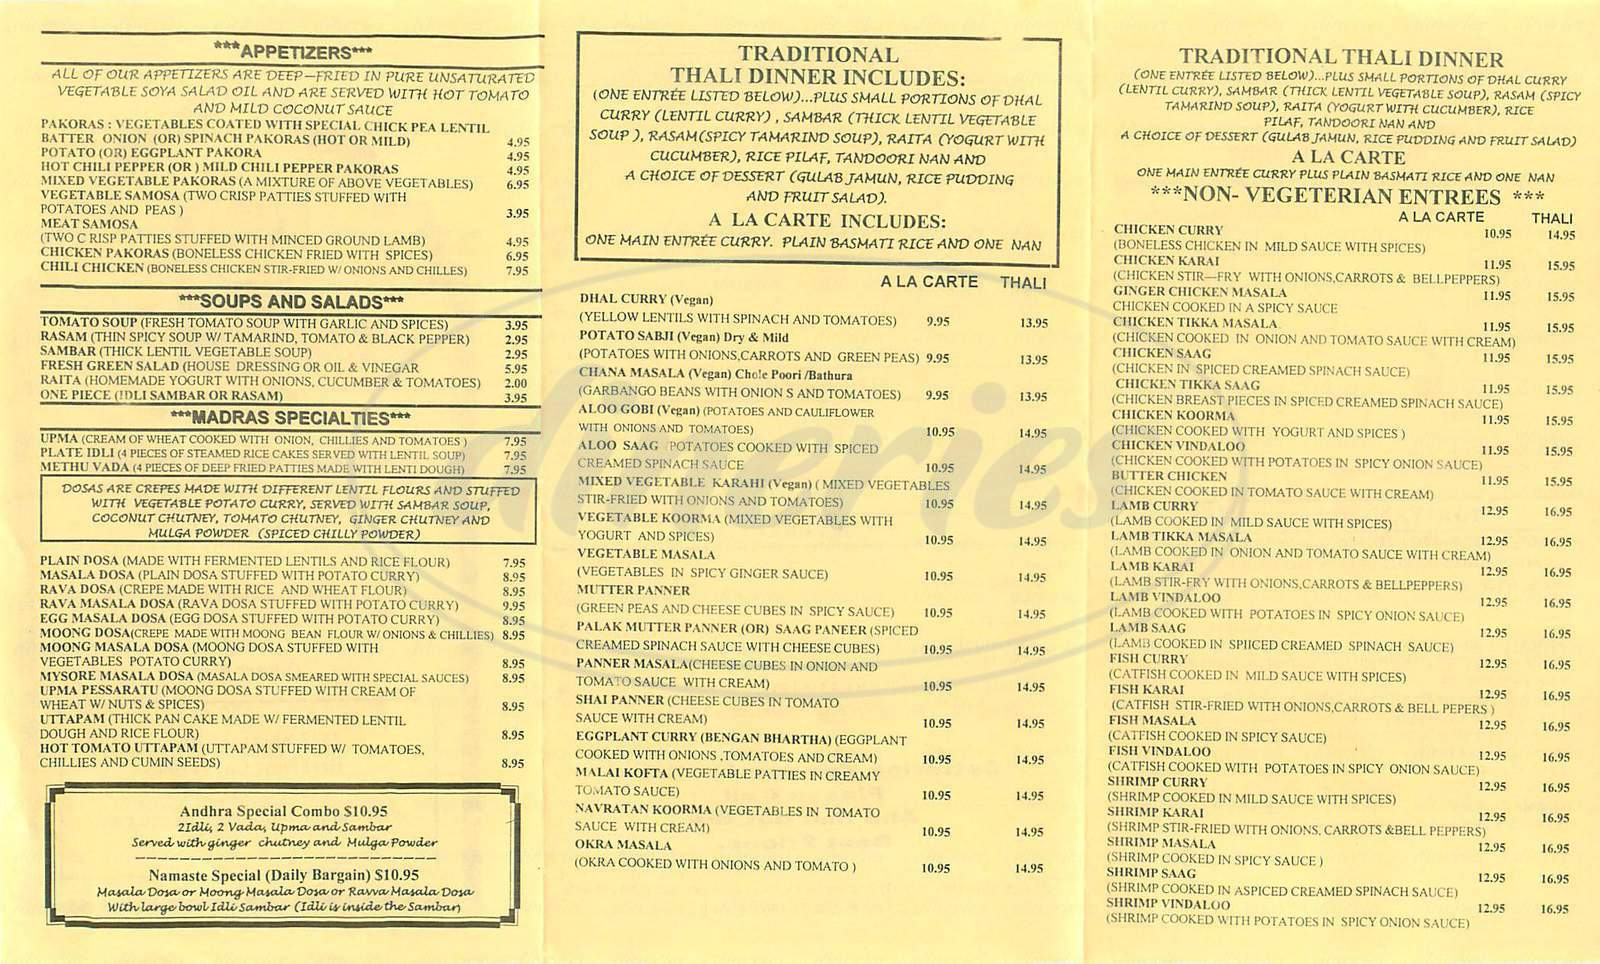 menu for Namaste Madras Cuisine